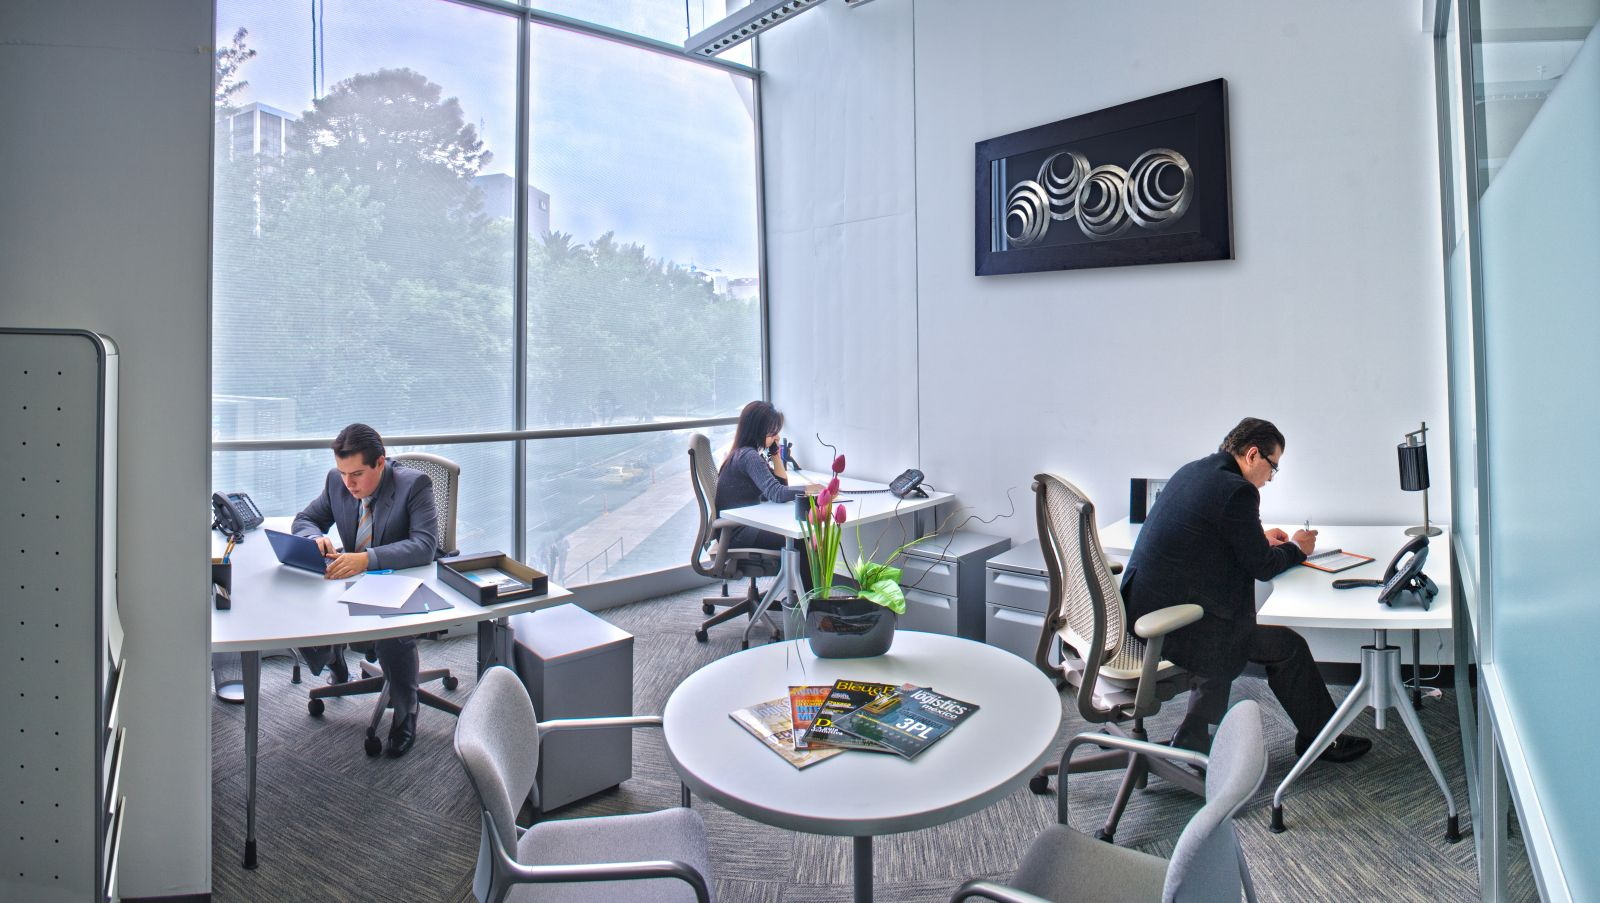 IOS OFFICES REFORMA 222, Mexico City